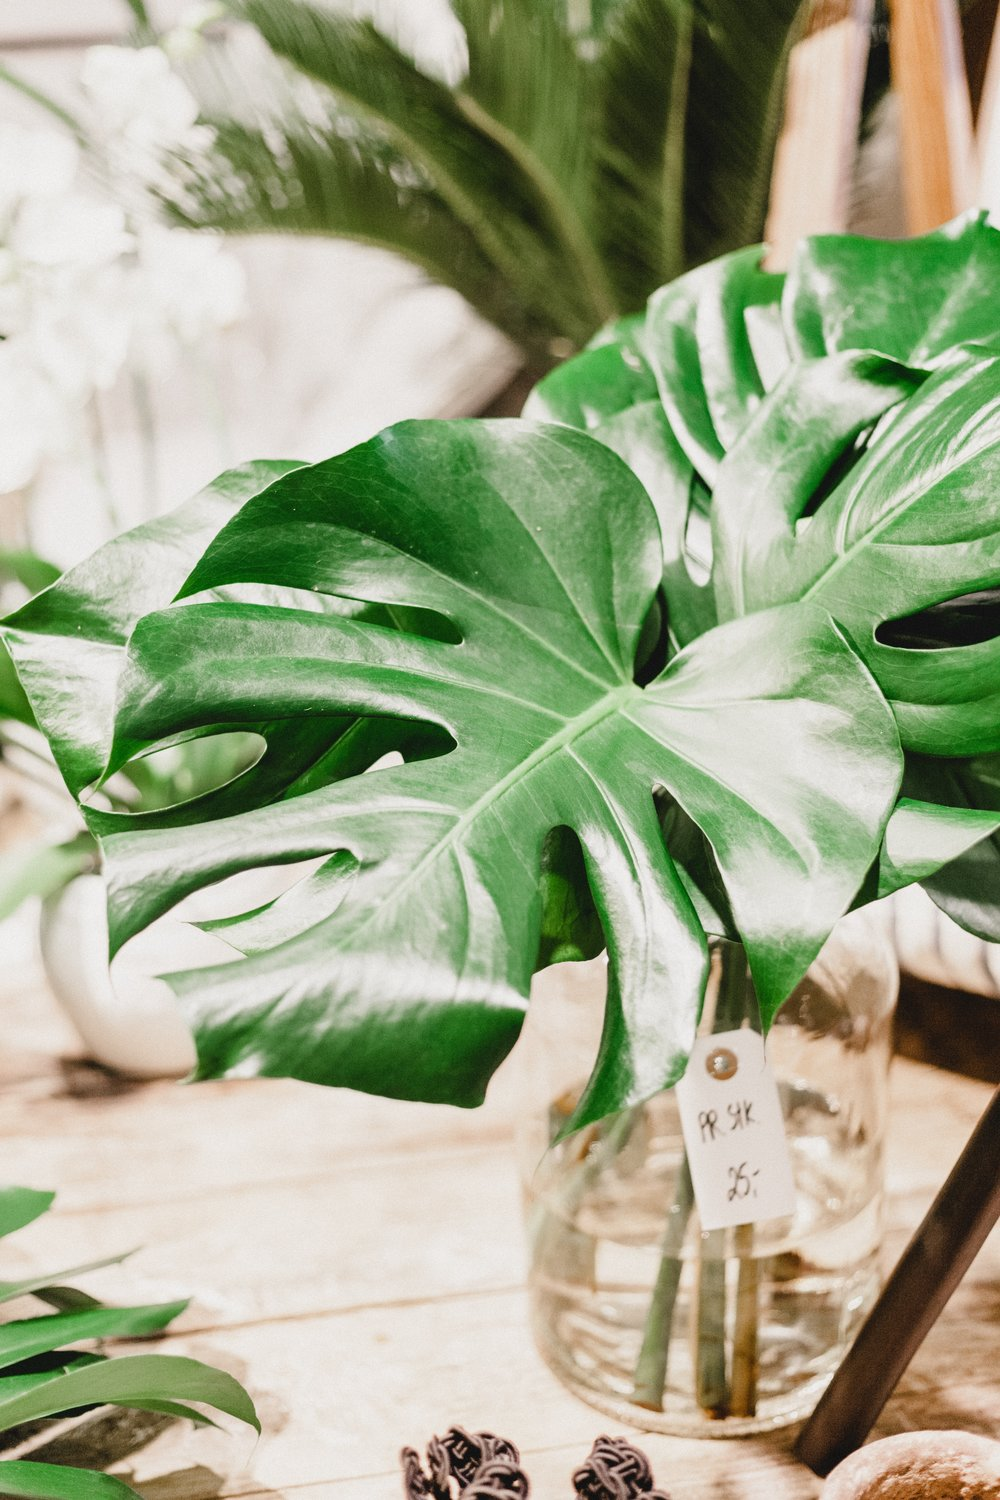 monstera deliciosa  (but I prefer its other name, the cheese plant)